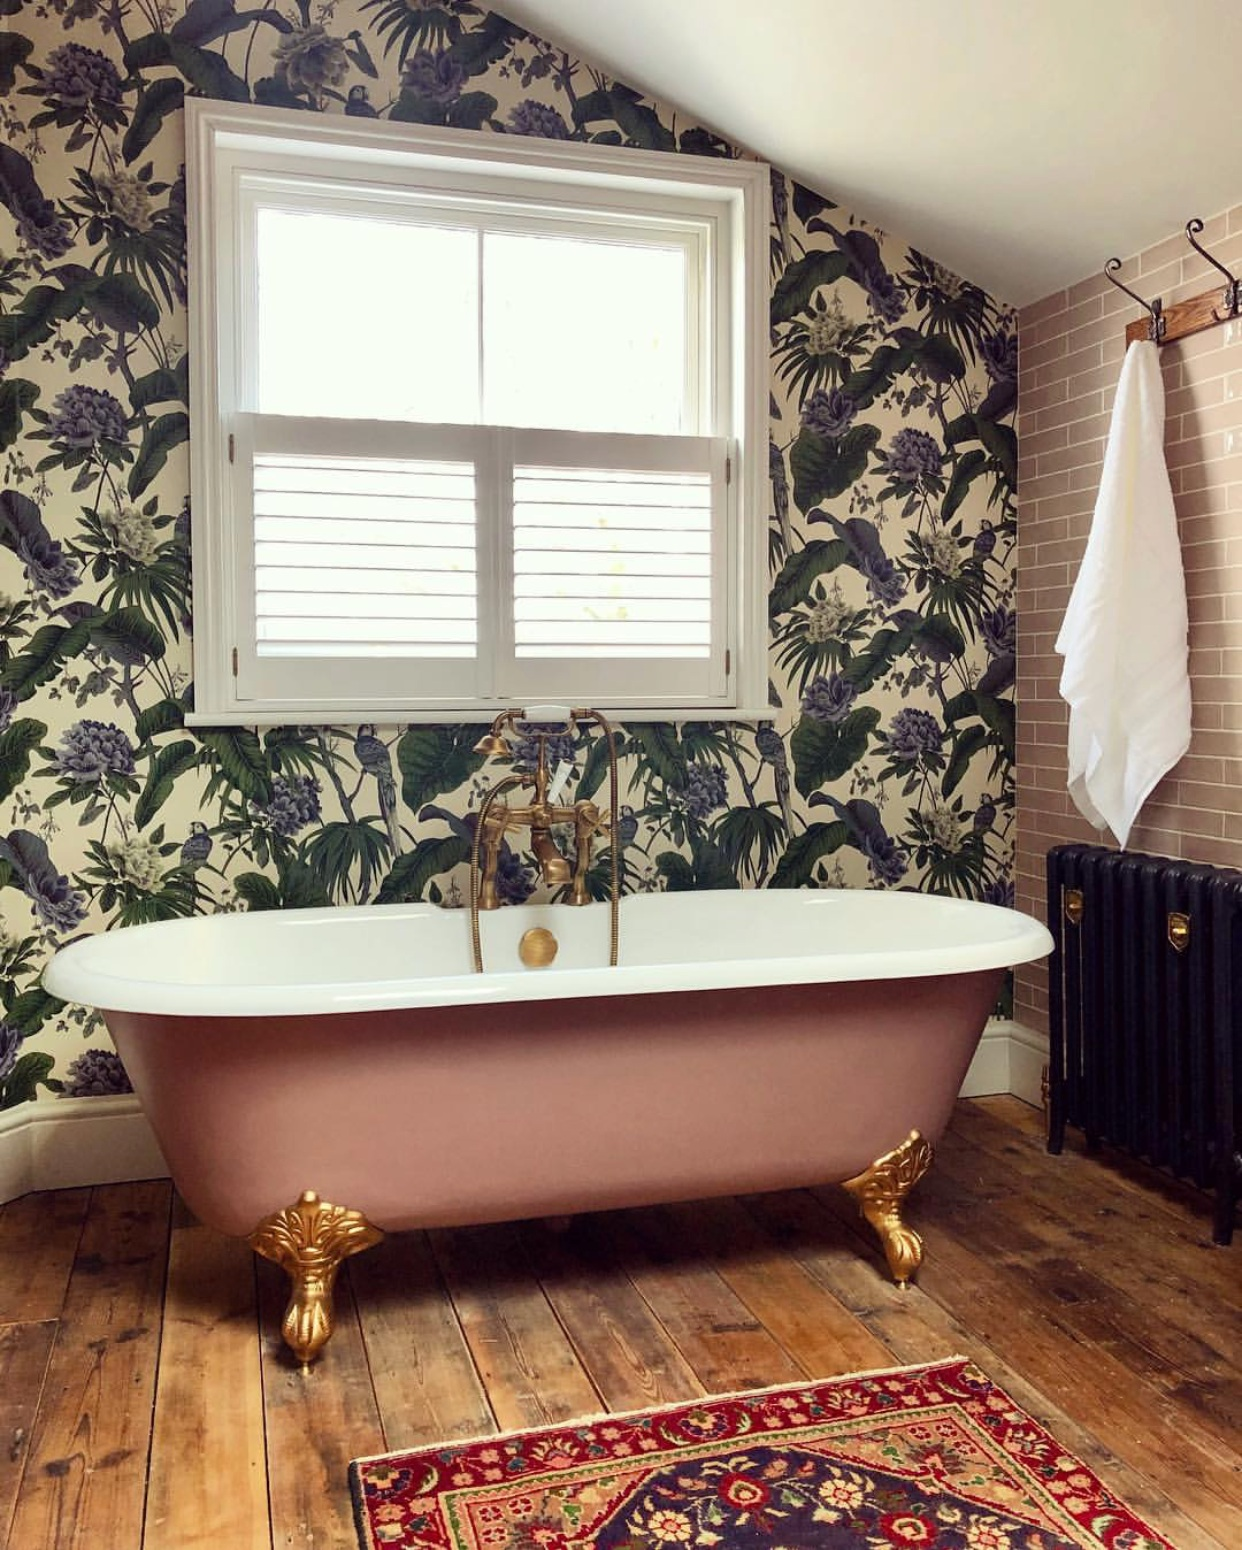 Example of cafe style shutters from  @renovation_wreck